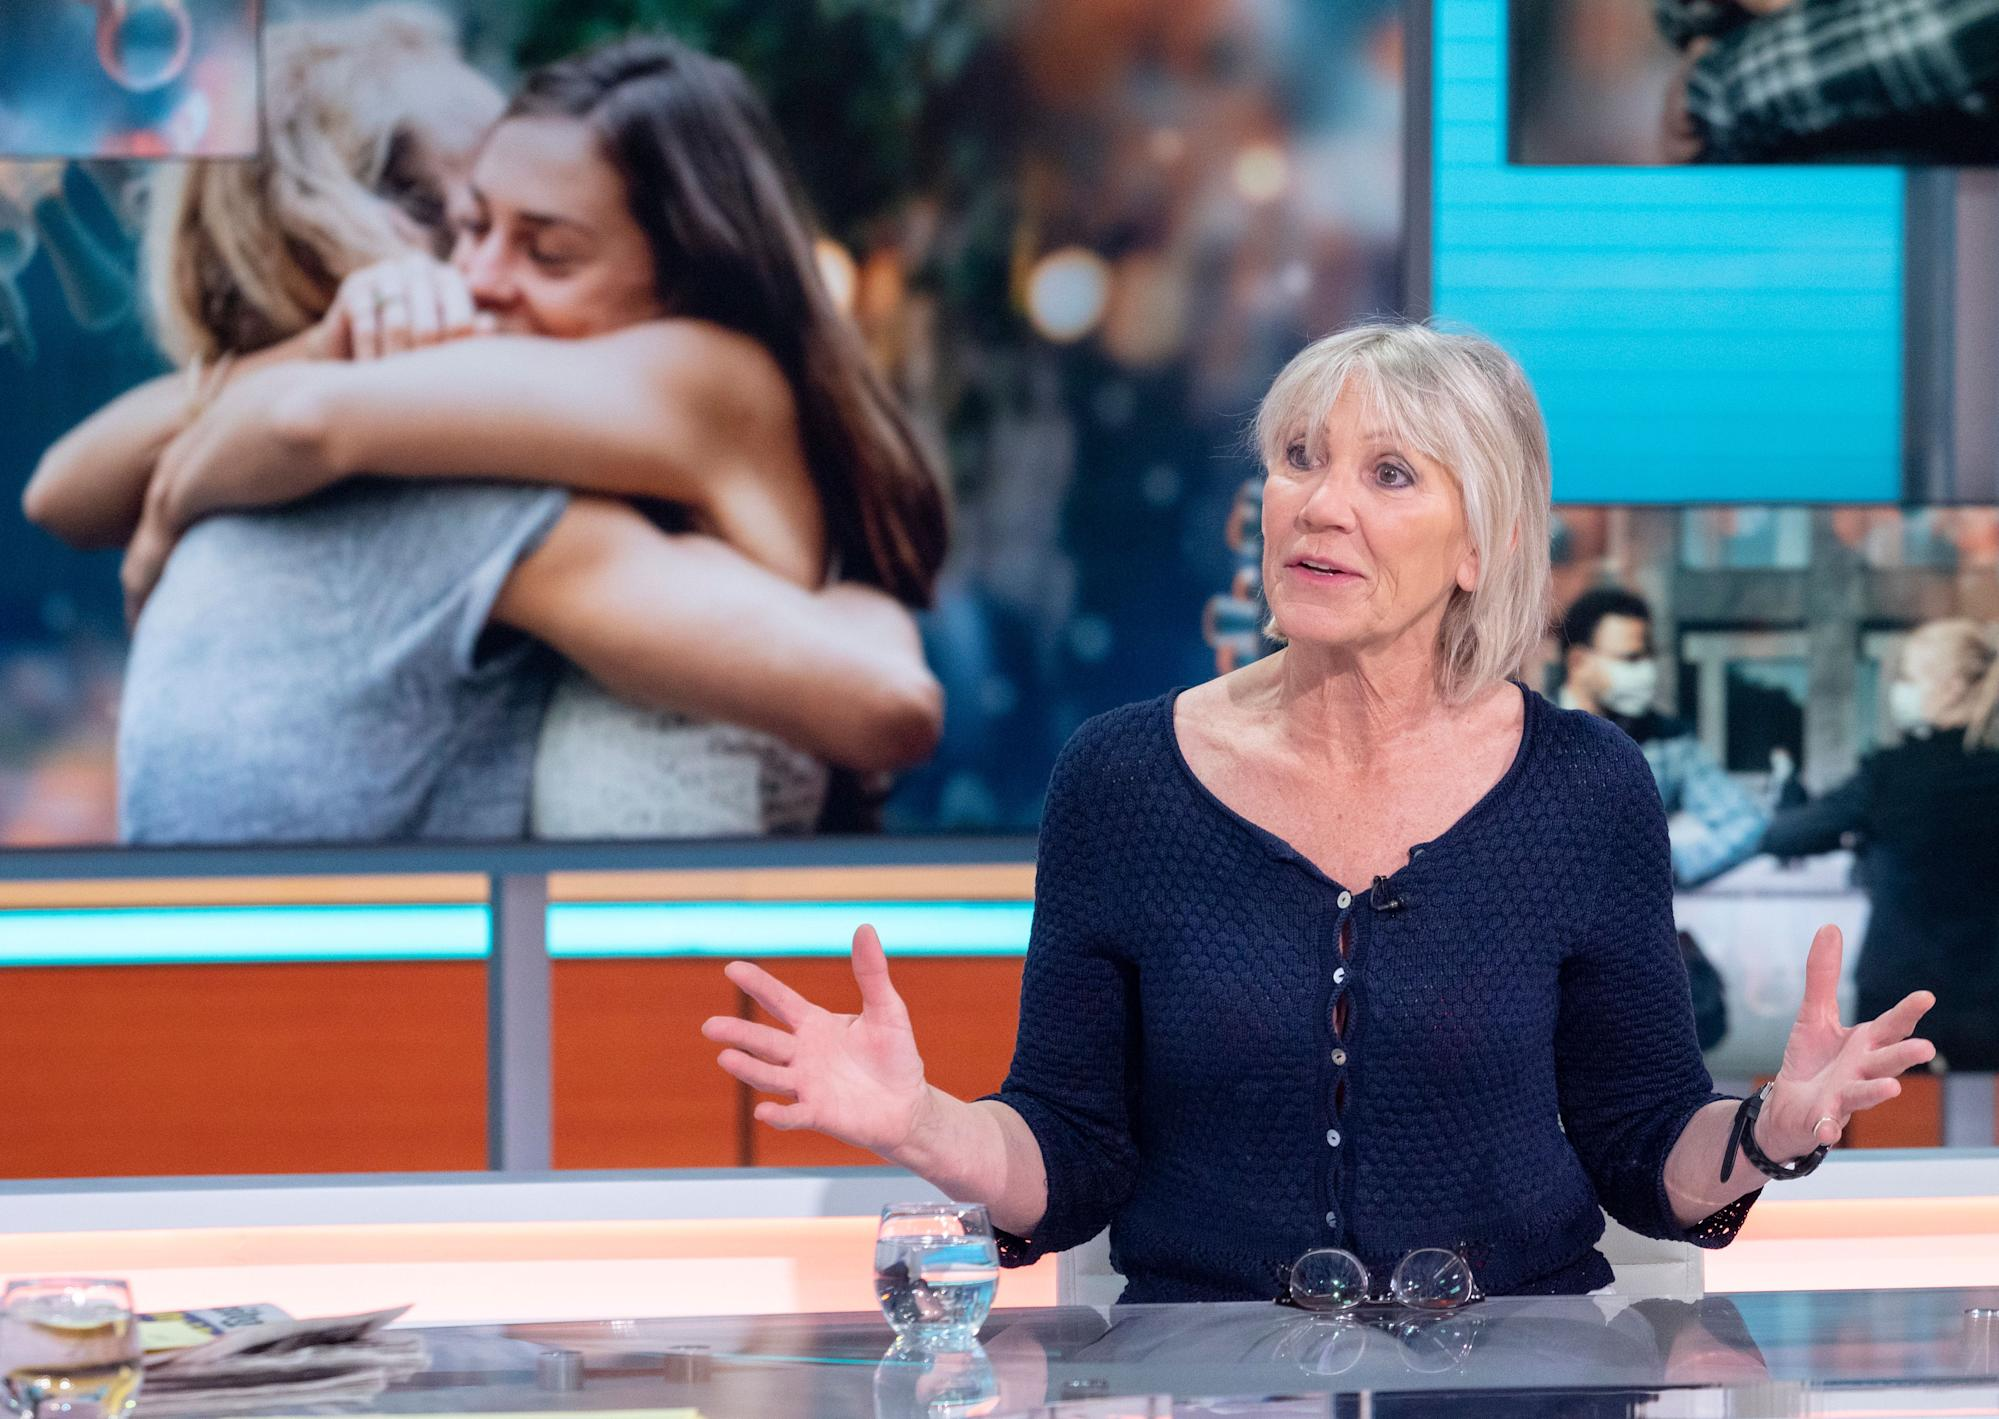 Ingrid Tarrant slammed as 'irresponsible' for continuing to hug but not getting vaccinated